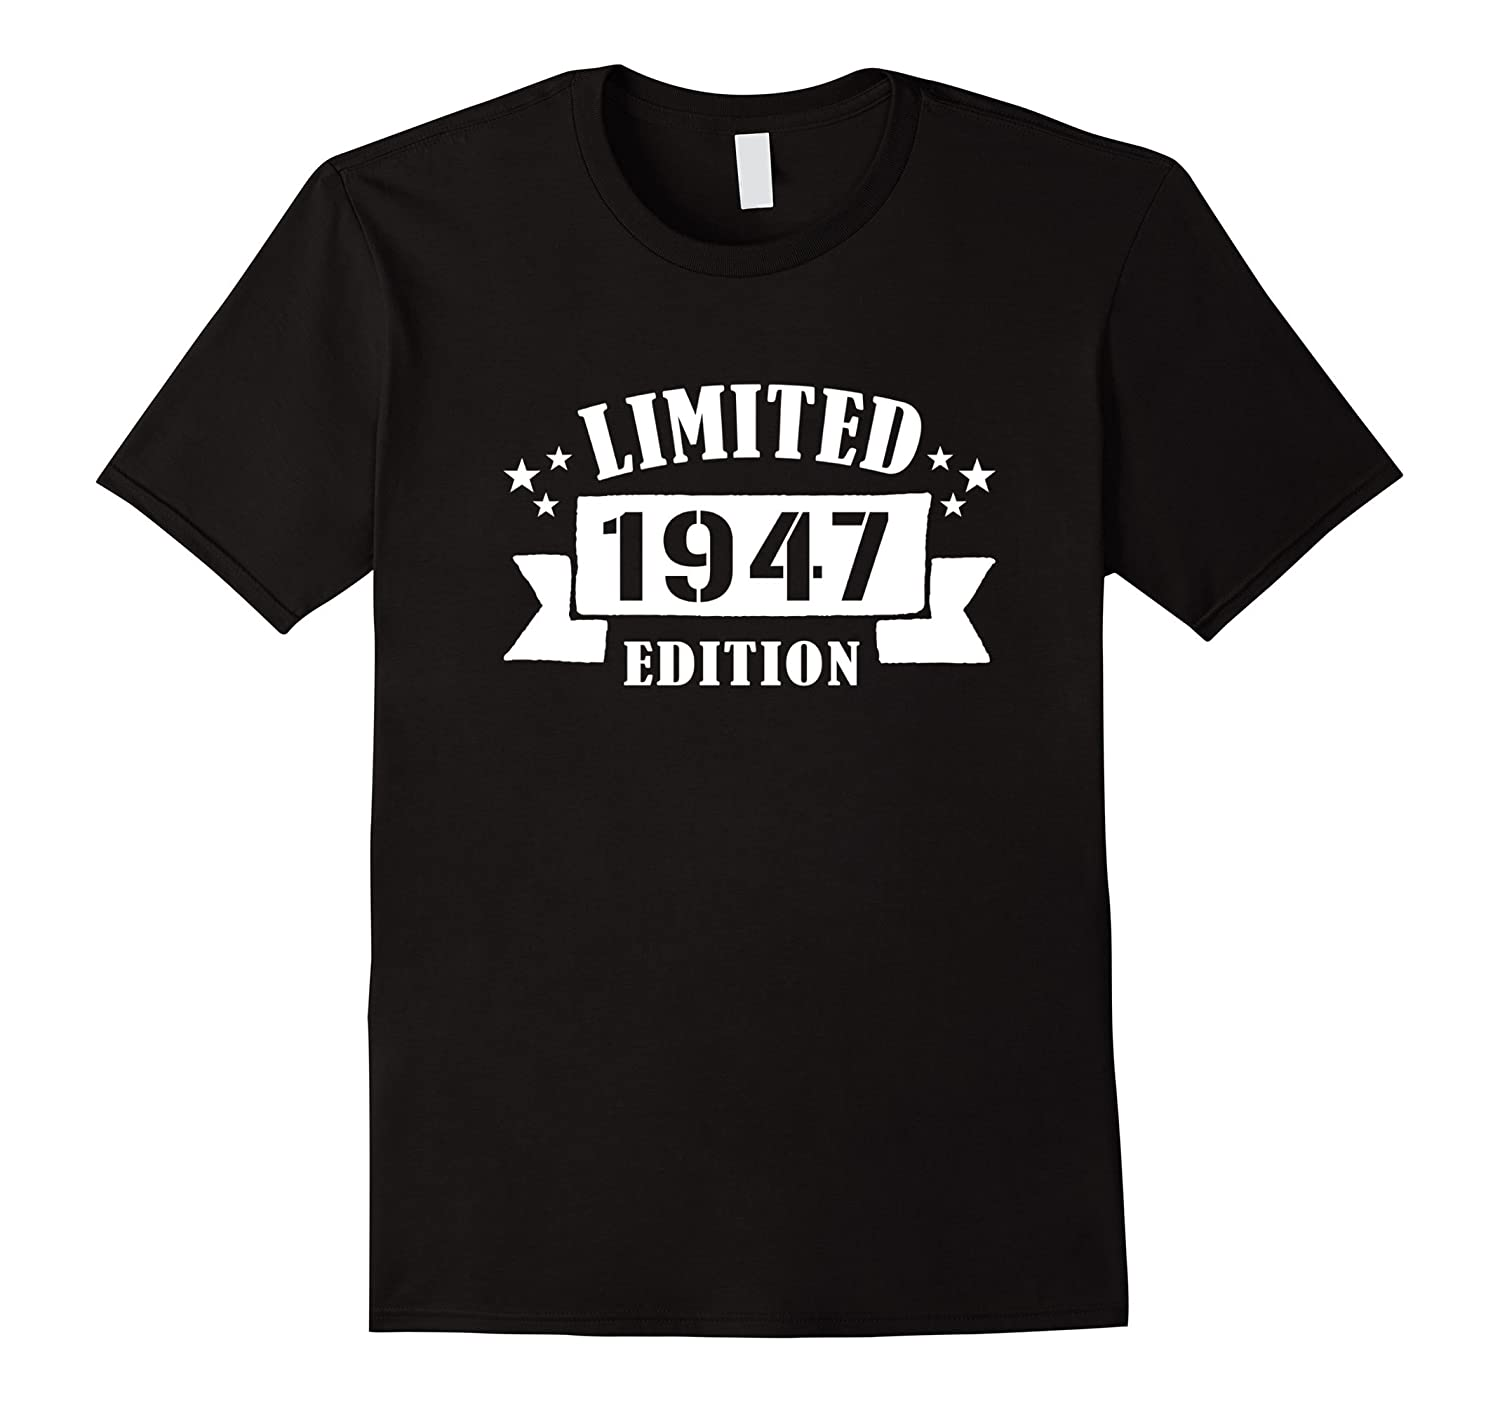 Limited 1947 Edition Funny 70th Birthday Gifts T Shirt PL